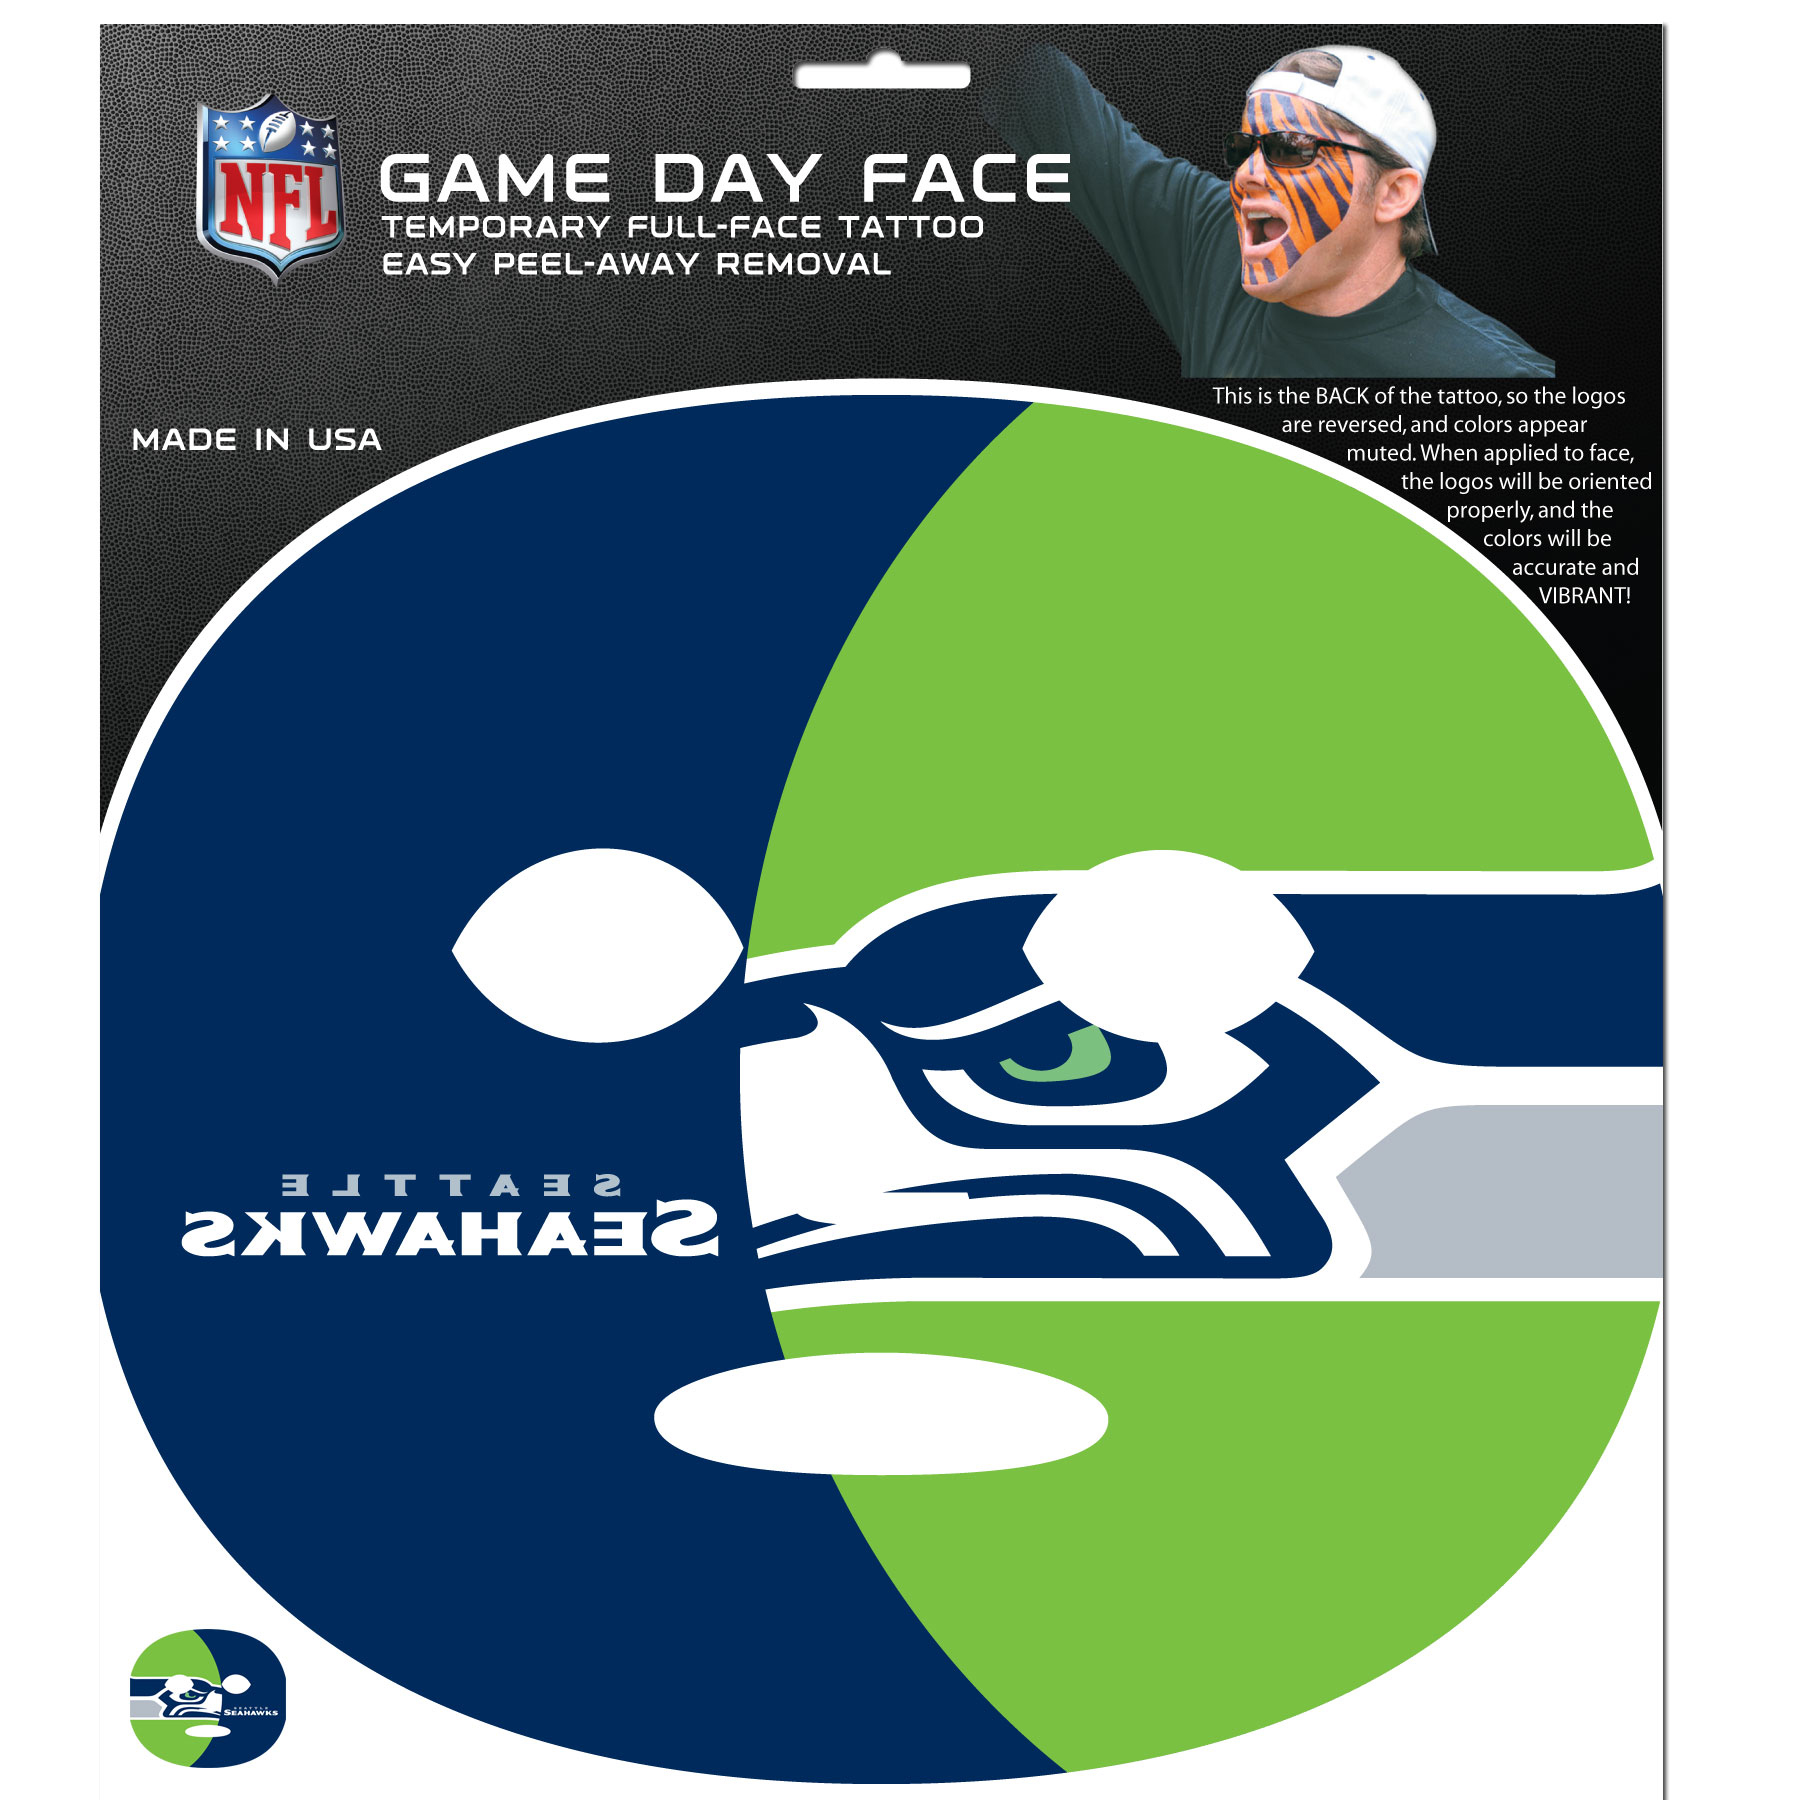 Seattle Seahawks Game Face Temporary Tattoo - No better way to show your Seattle Seahawks pride than by painting your face. Siskiyou's Game Day Face Temporary Tattoo isn't your typical face paint. It is a water based application that doesn't smudge, smear or sweat off  while you're wearing it and easily peels off after you're done celebrating your team's big Win! The temporary tattoo is large enough to trim down to fit your face.  Our Game Day Face Temporary Tattoo's are fun for fans of all ages. You may have seen our product before,  these are the same Temporary Face Tattoos as pitched on ABC's Shark Tank.